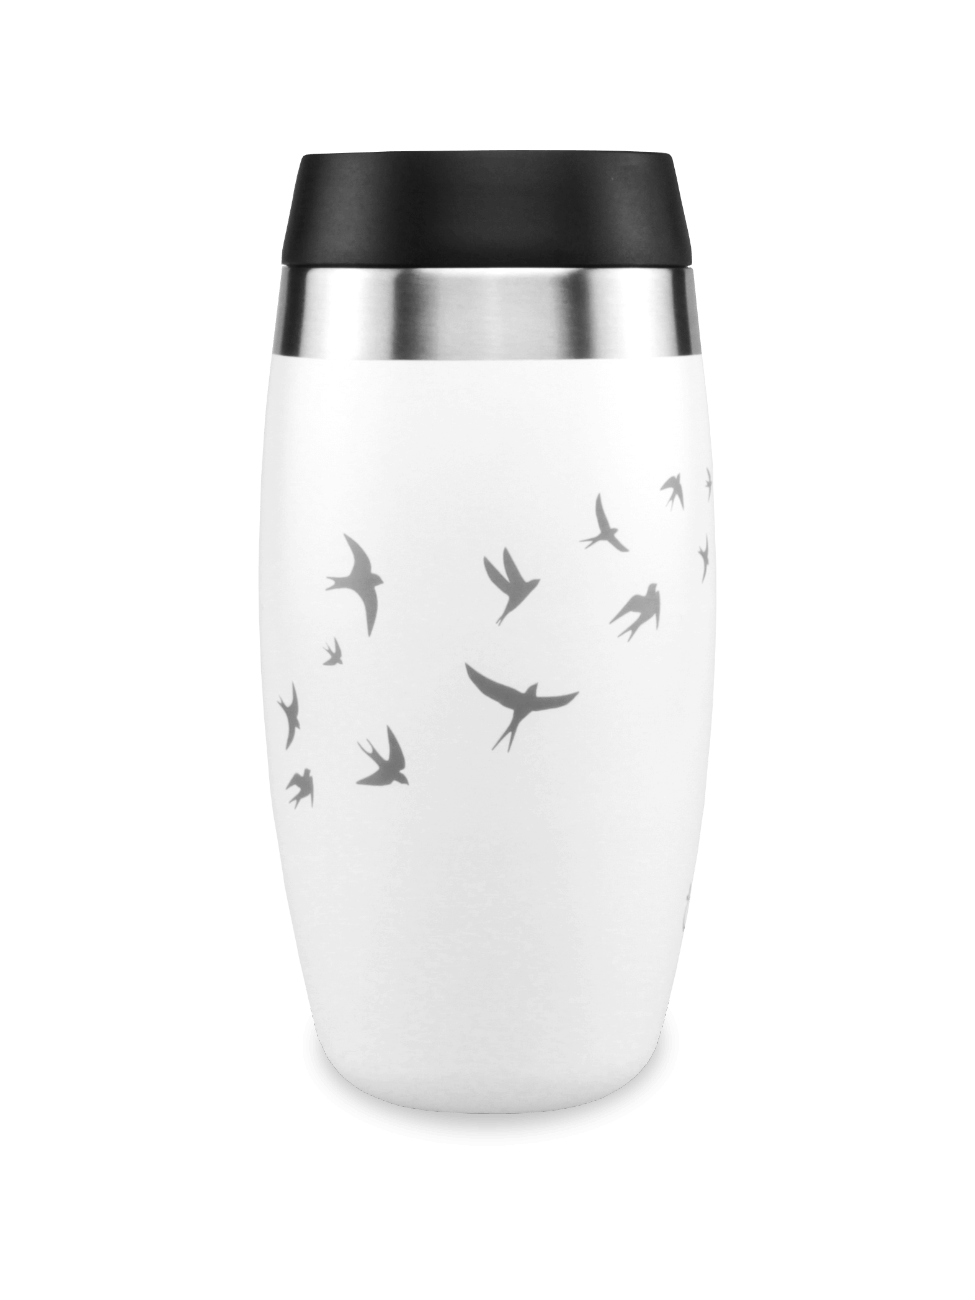 Leakproof white reusable coffee cup with laser etched swallows